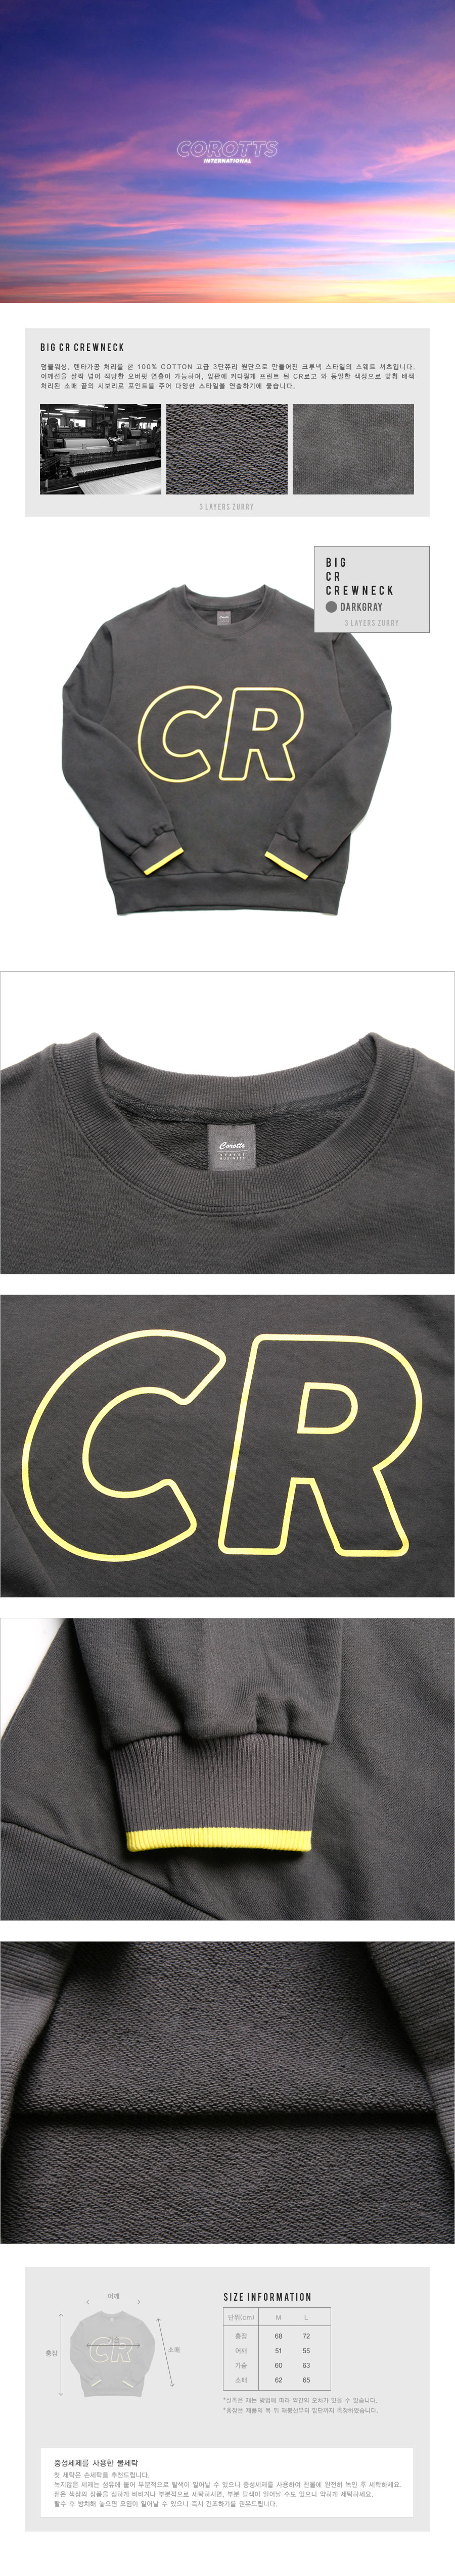 big-cr-crewneck-(darkgray).jpg